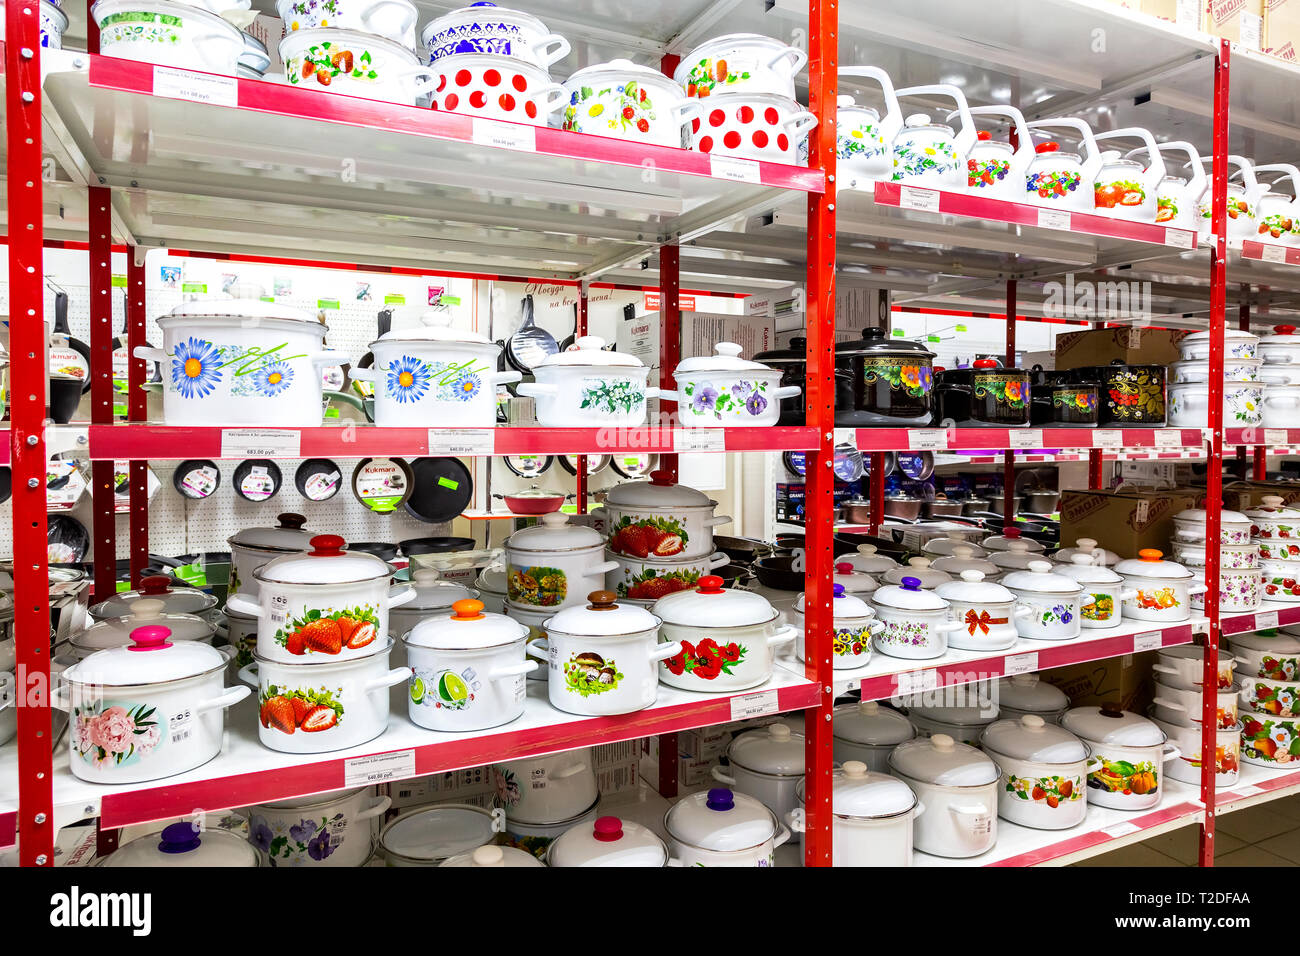 Samara, Russia - March 30, 2019: Different bright metal enamelware, cooking pots containers utensils for sale on store shelf - Stock Image